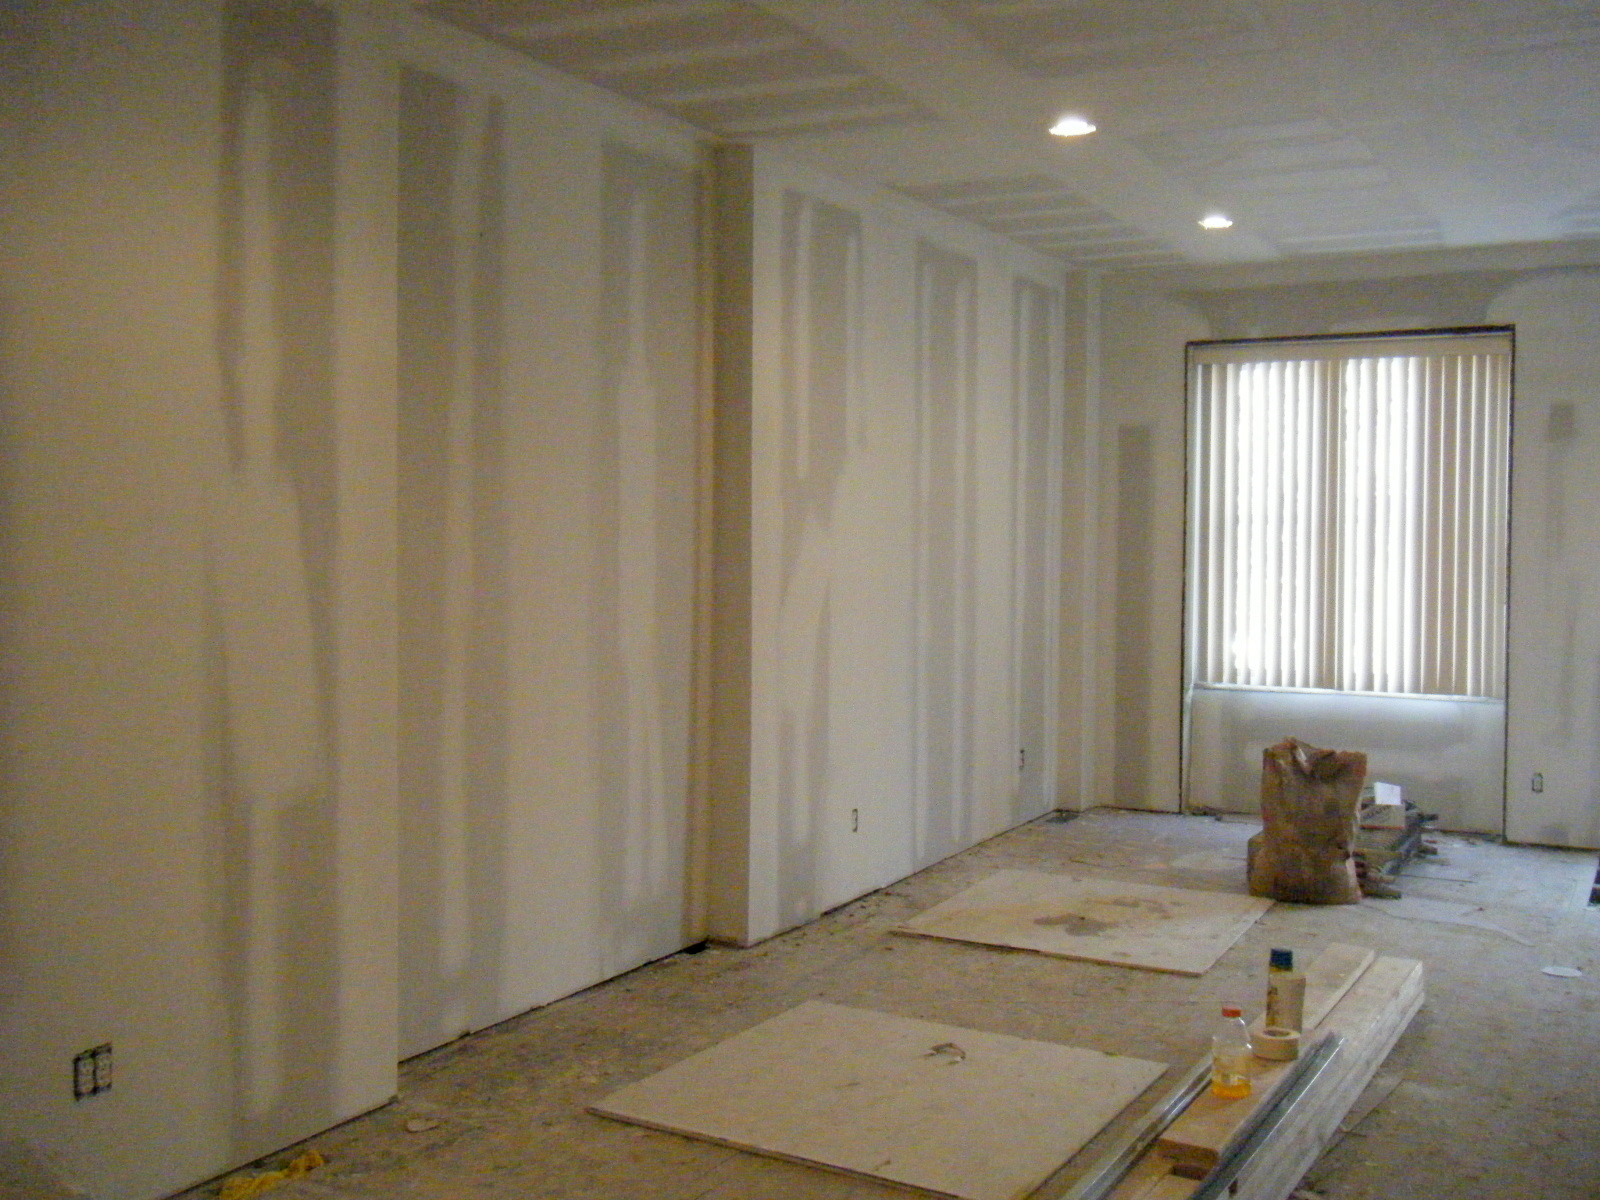 Wallpaper Drywall For Chic Decorating 1600x1200